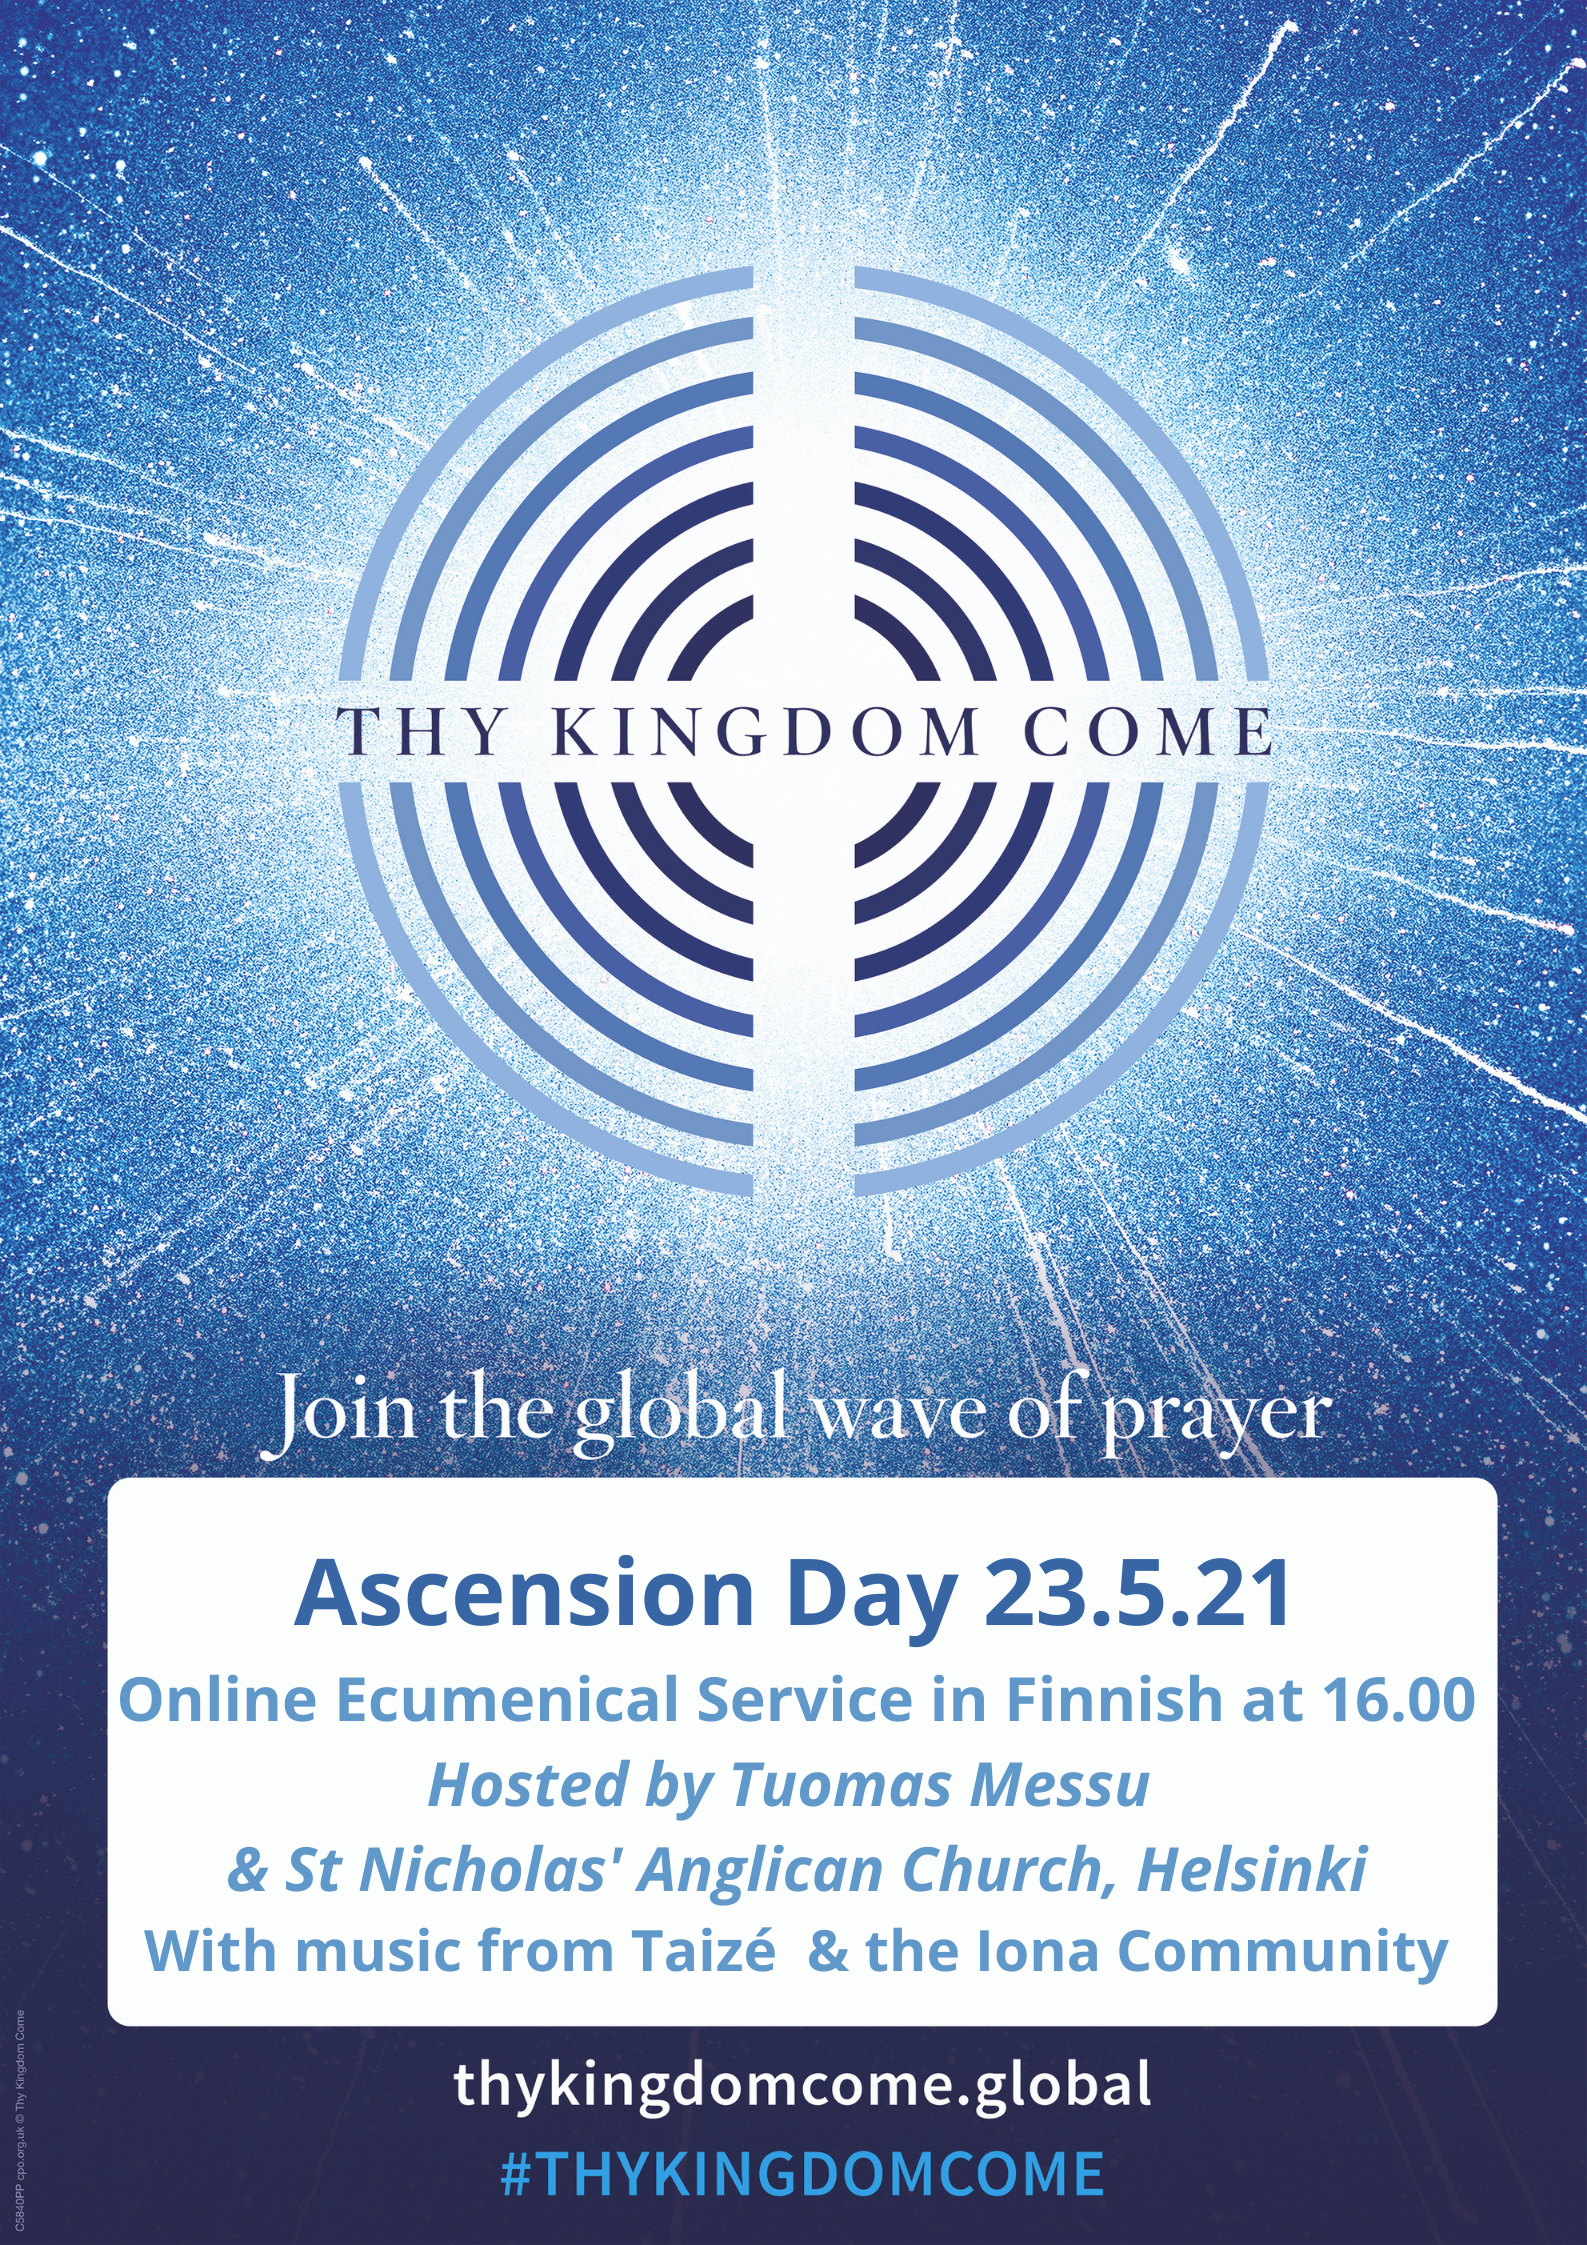 Ascension Day Ecumenical Service at 16.00 in Finnish Hosted by Tuomas Messu & St Nicholas' Church, Helsinki With music from Taizé & the Iona Community (1)